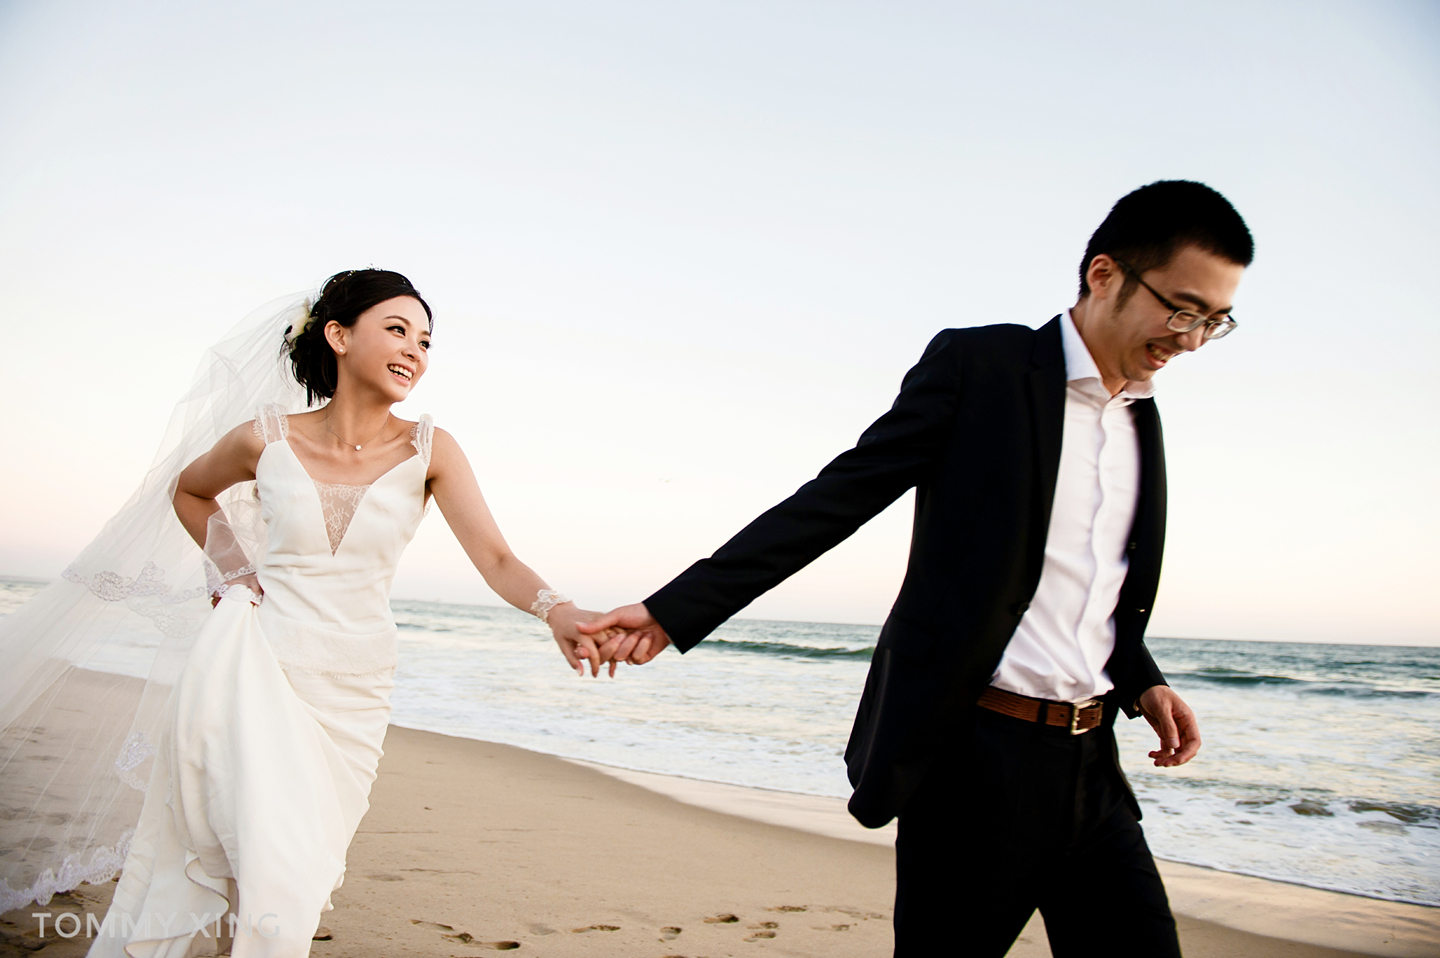 Los Angeles per-wedding 洛杉矶婚纱照 by Tommy Xing Photography 26.jpg